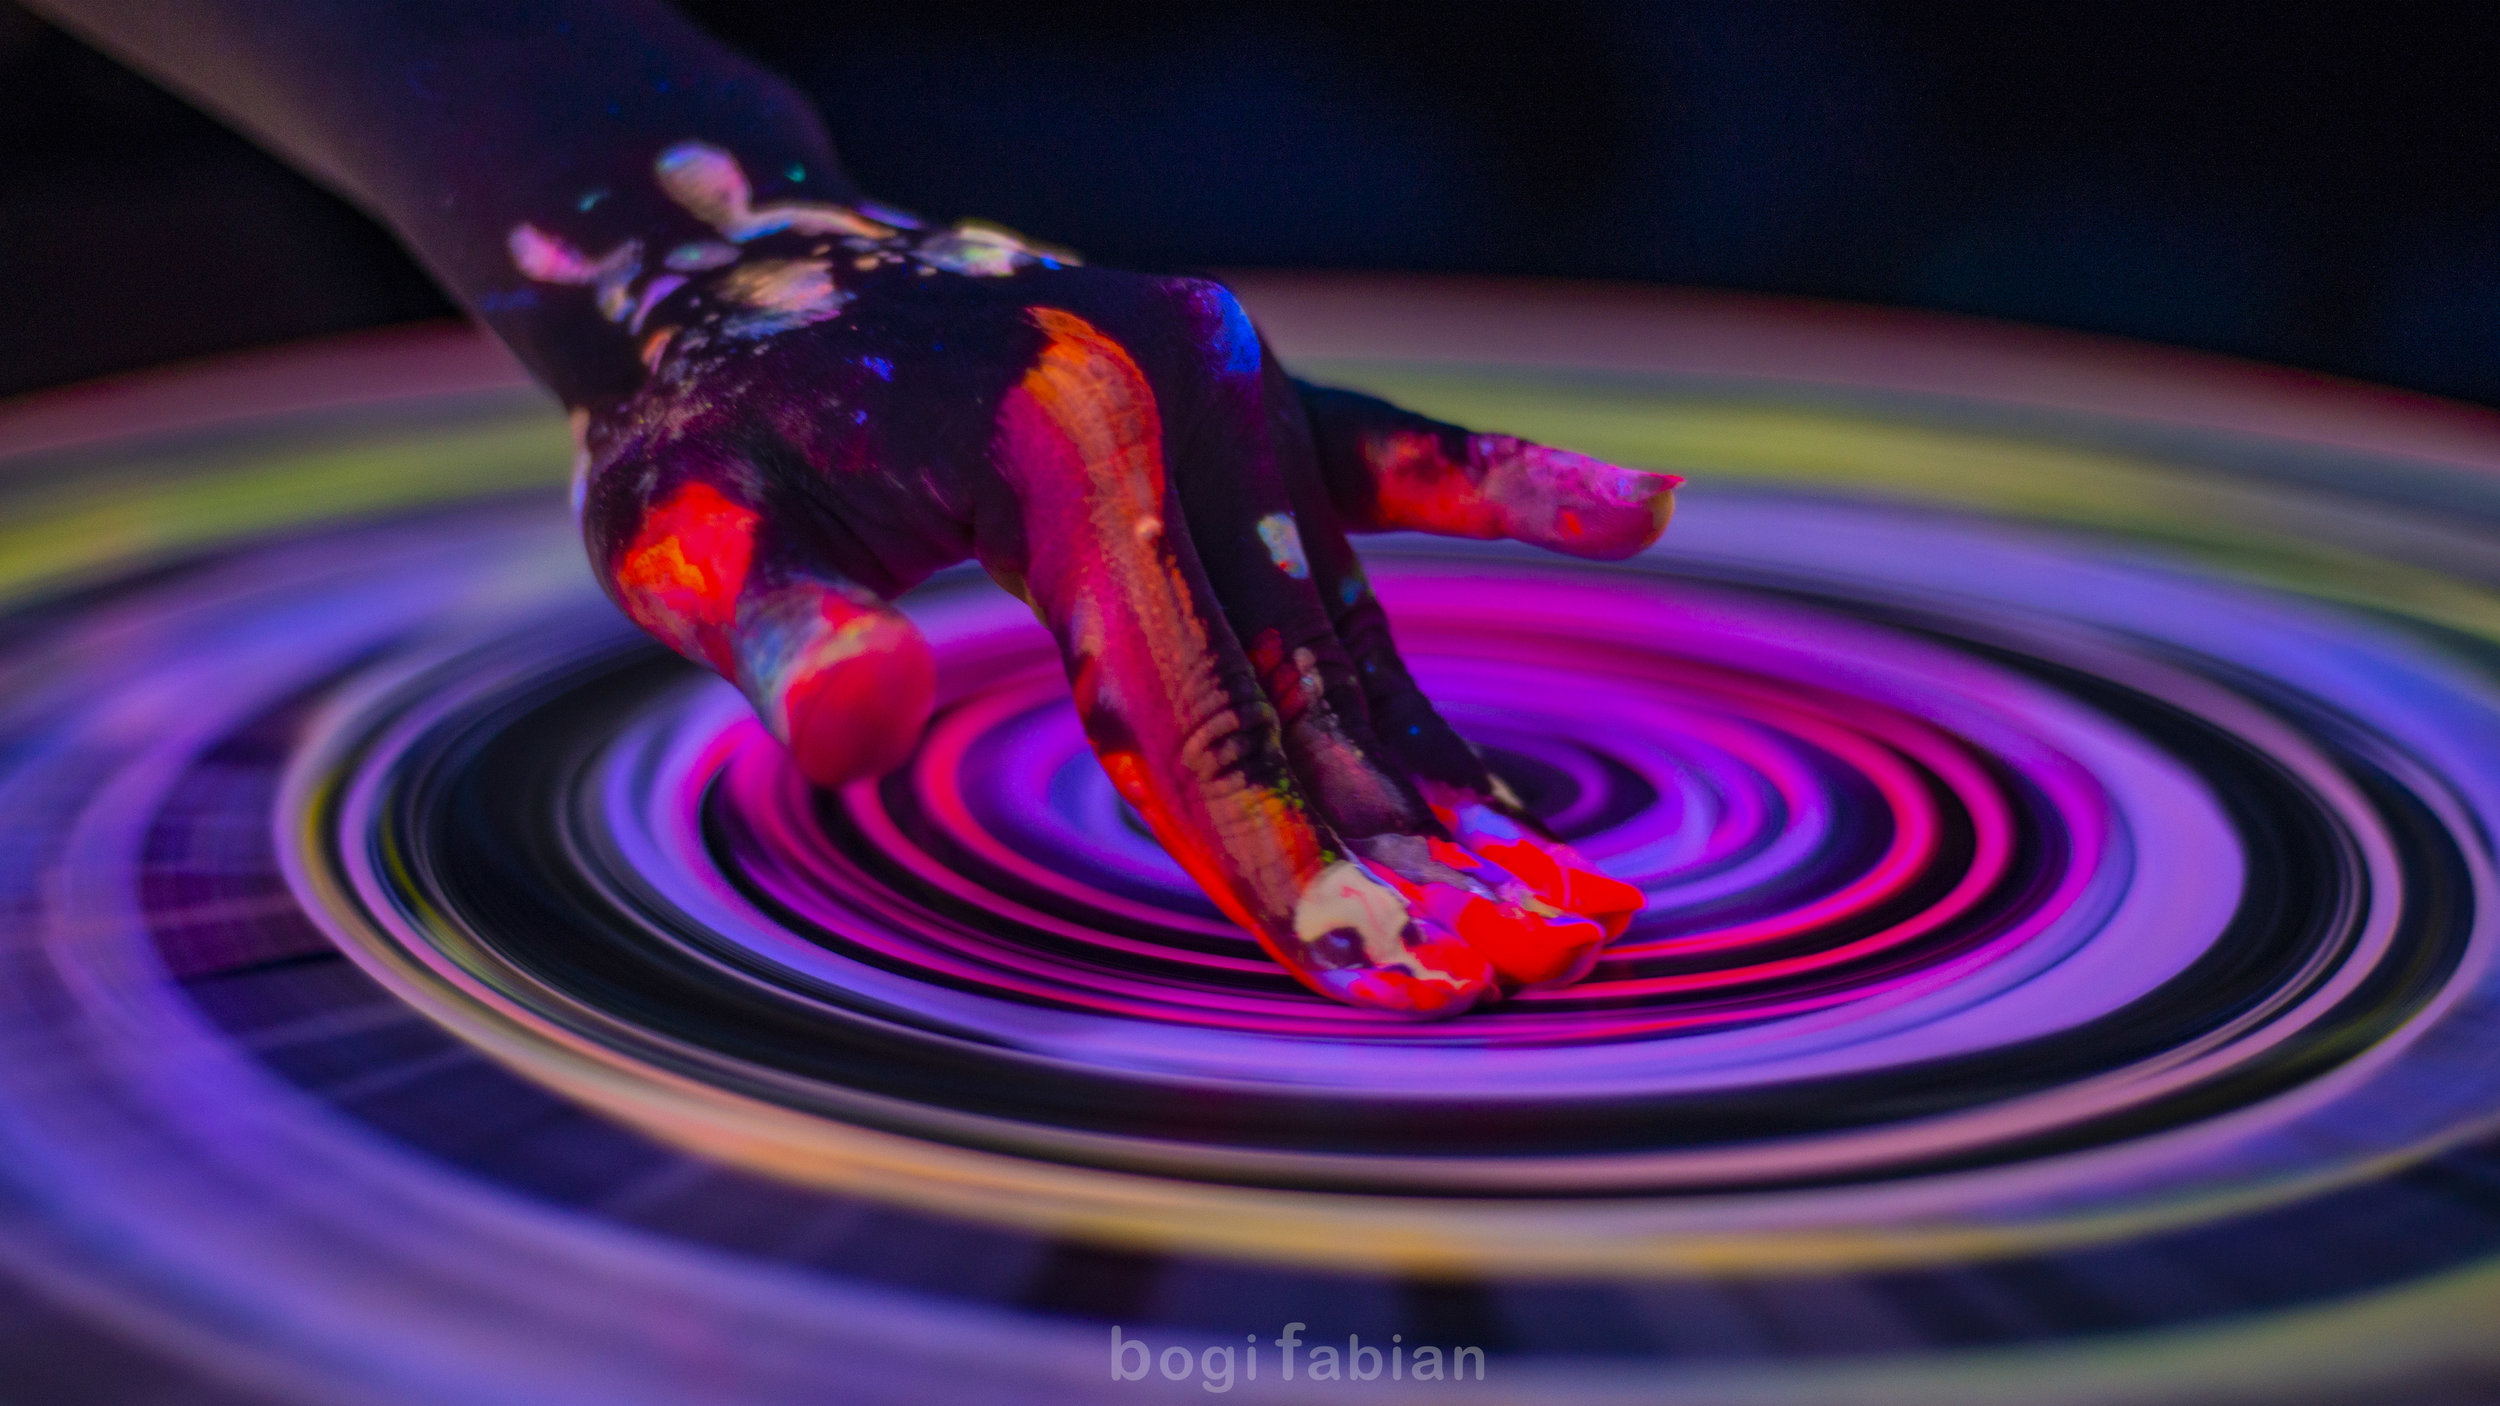 Bogi Fabian Pottery wheel Tomi Bojnec How to have fun on the potter's wheel ft. Ultraviolet Light  blacklight fluorescent magic